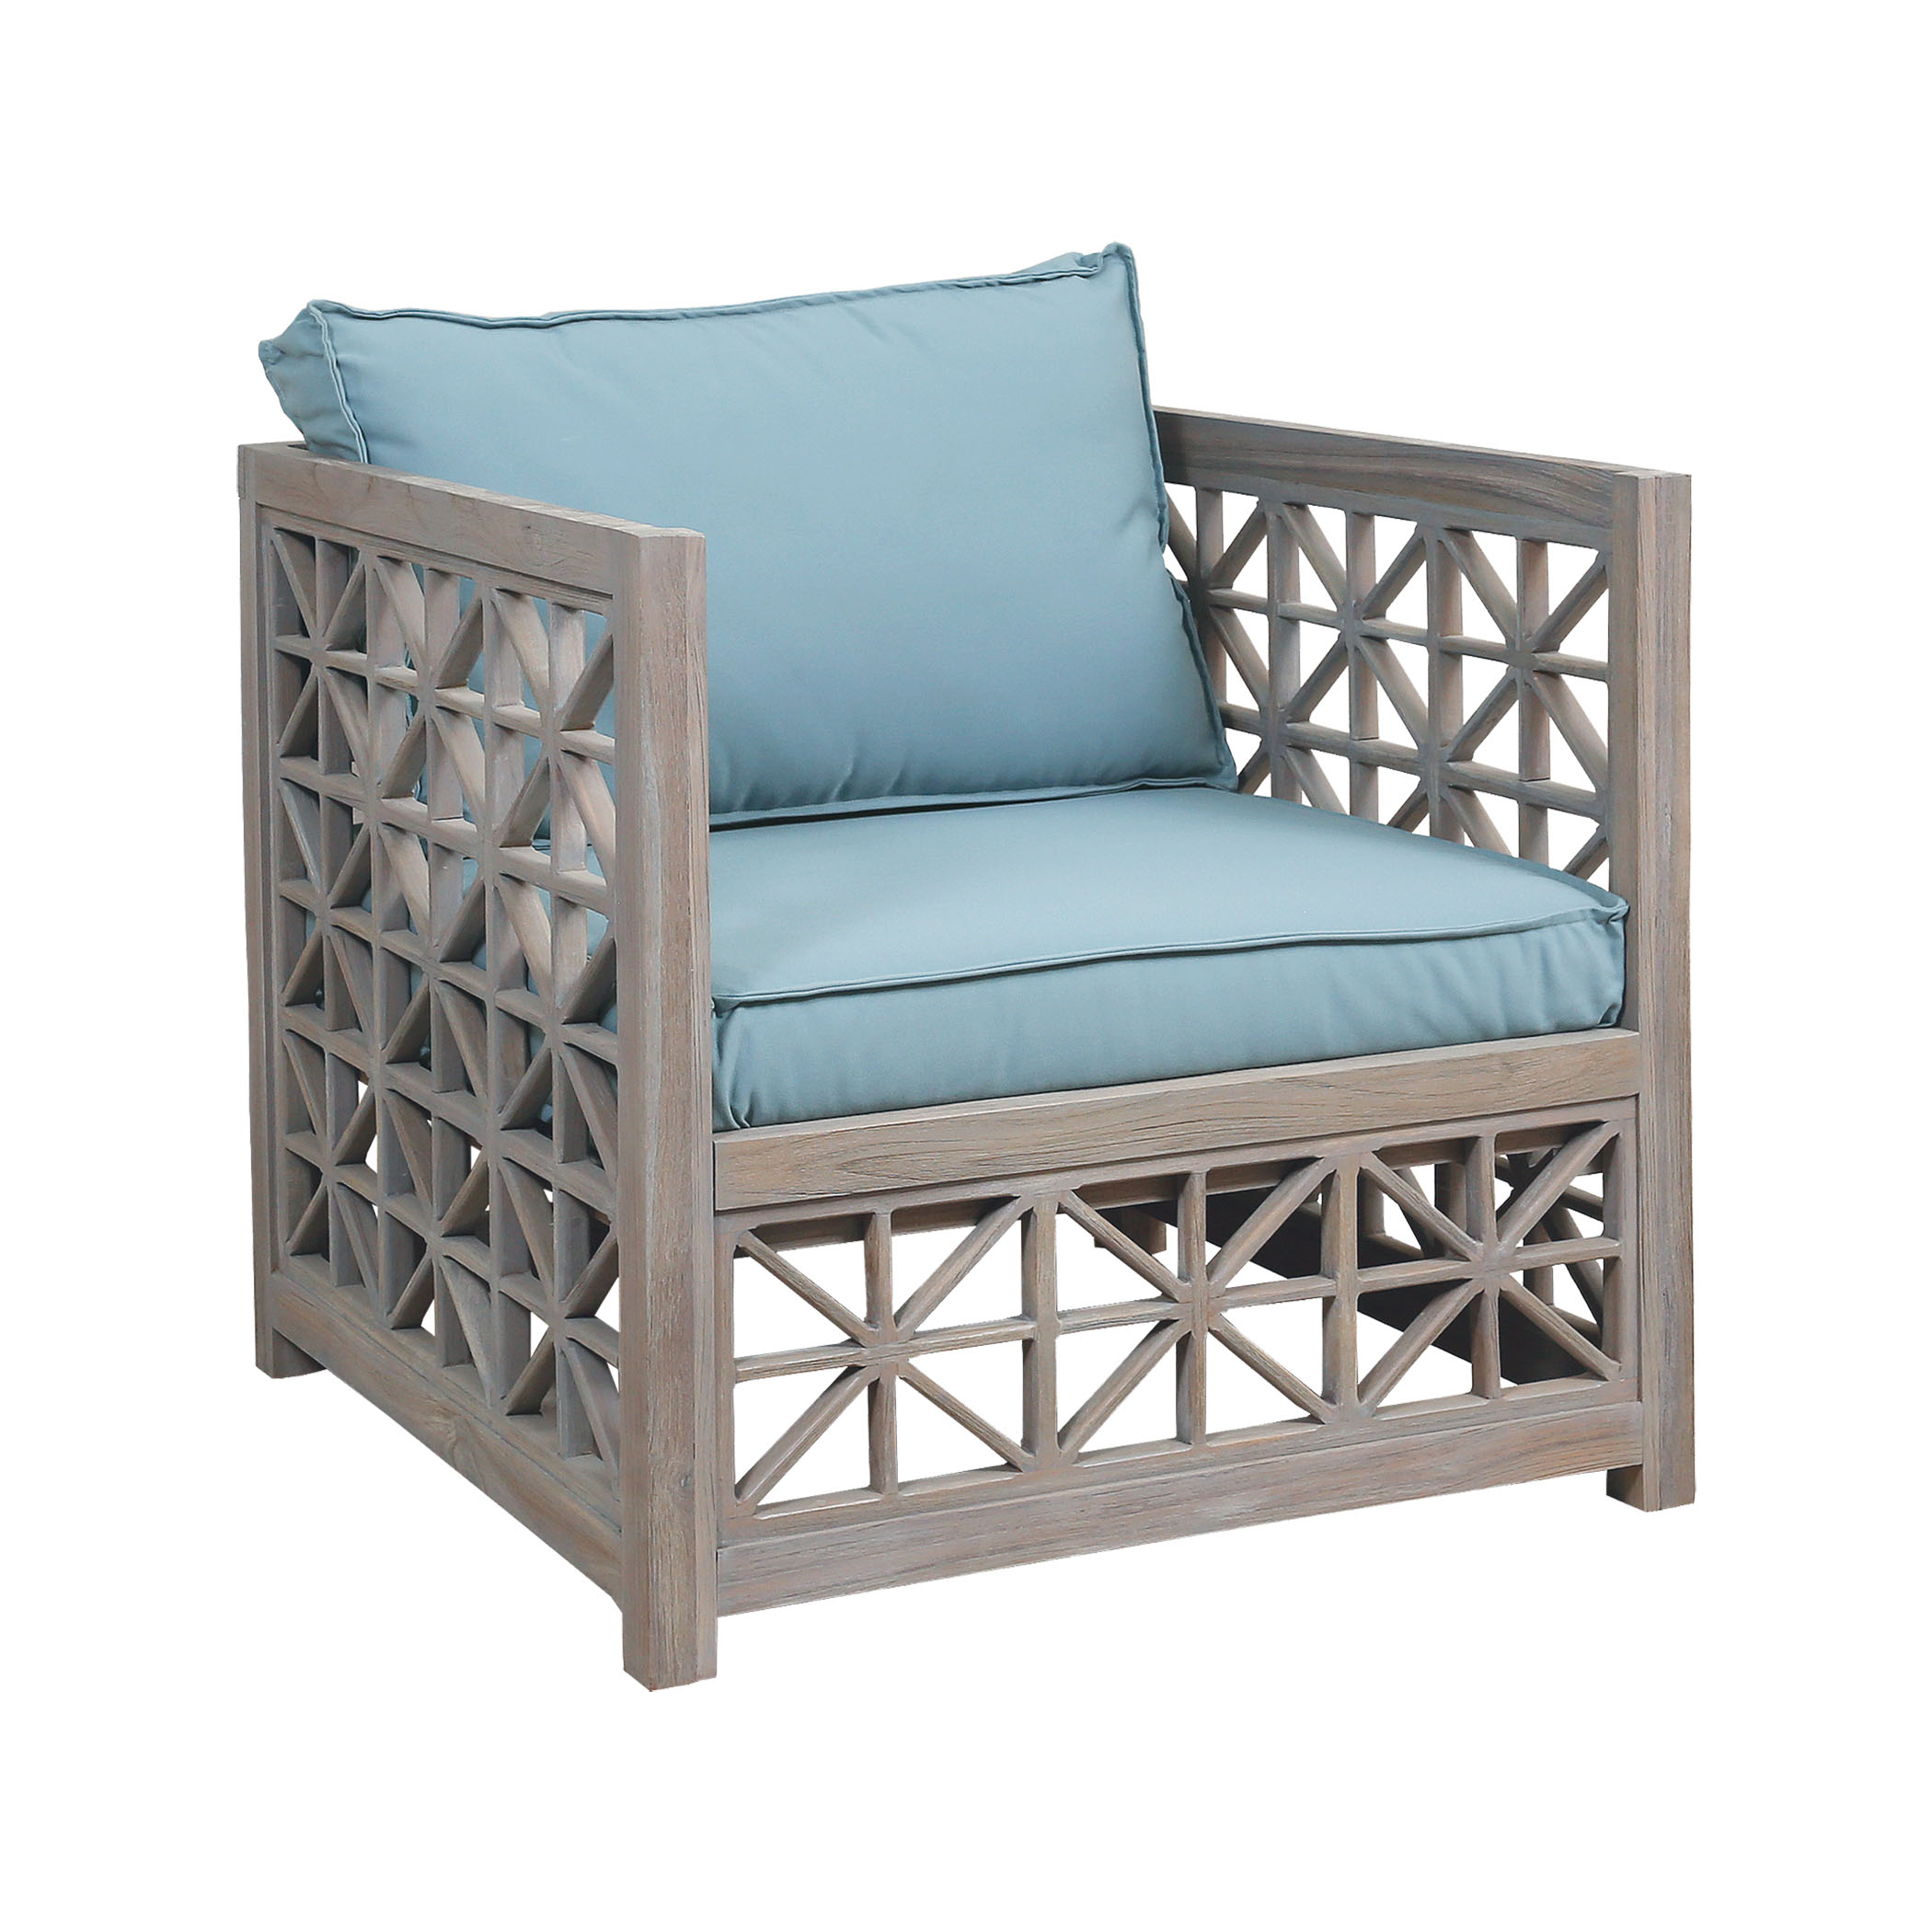 Guildmaster Vincent lattice outdoor chair